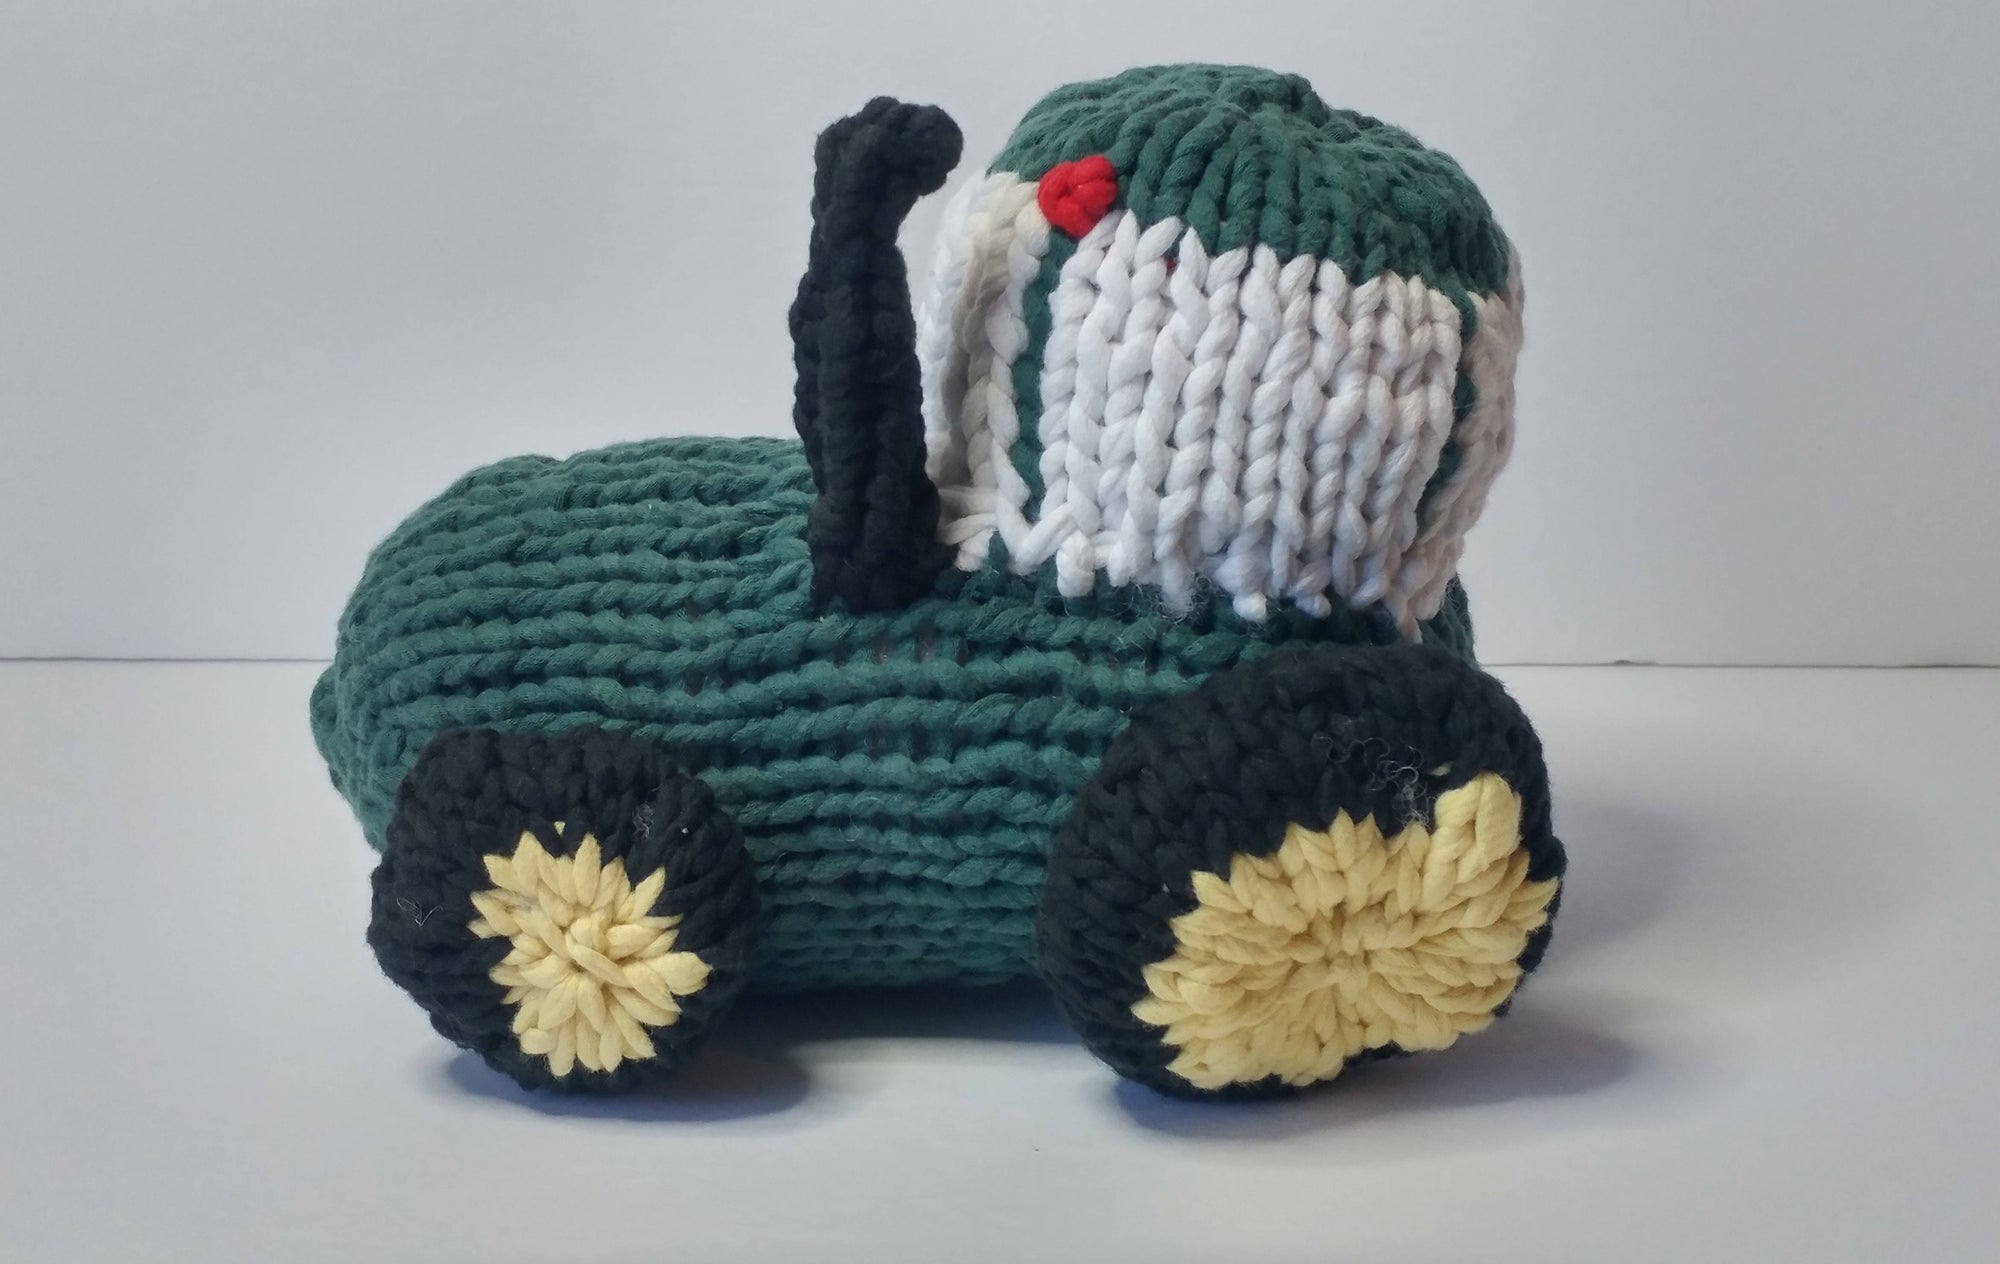 Tractor (Stuffed Toy)